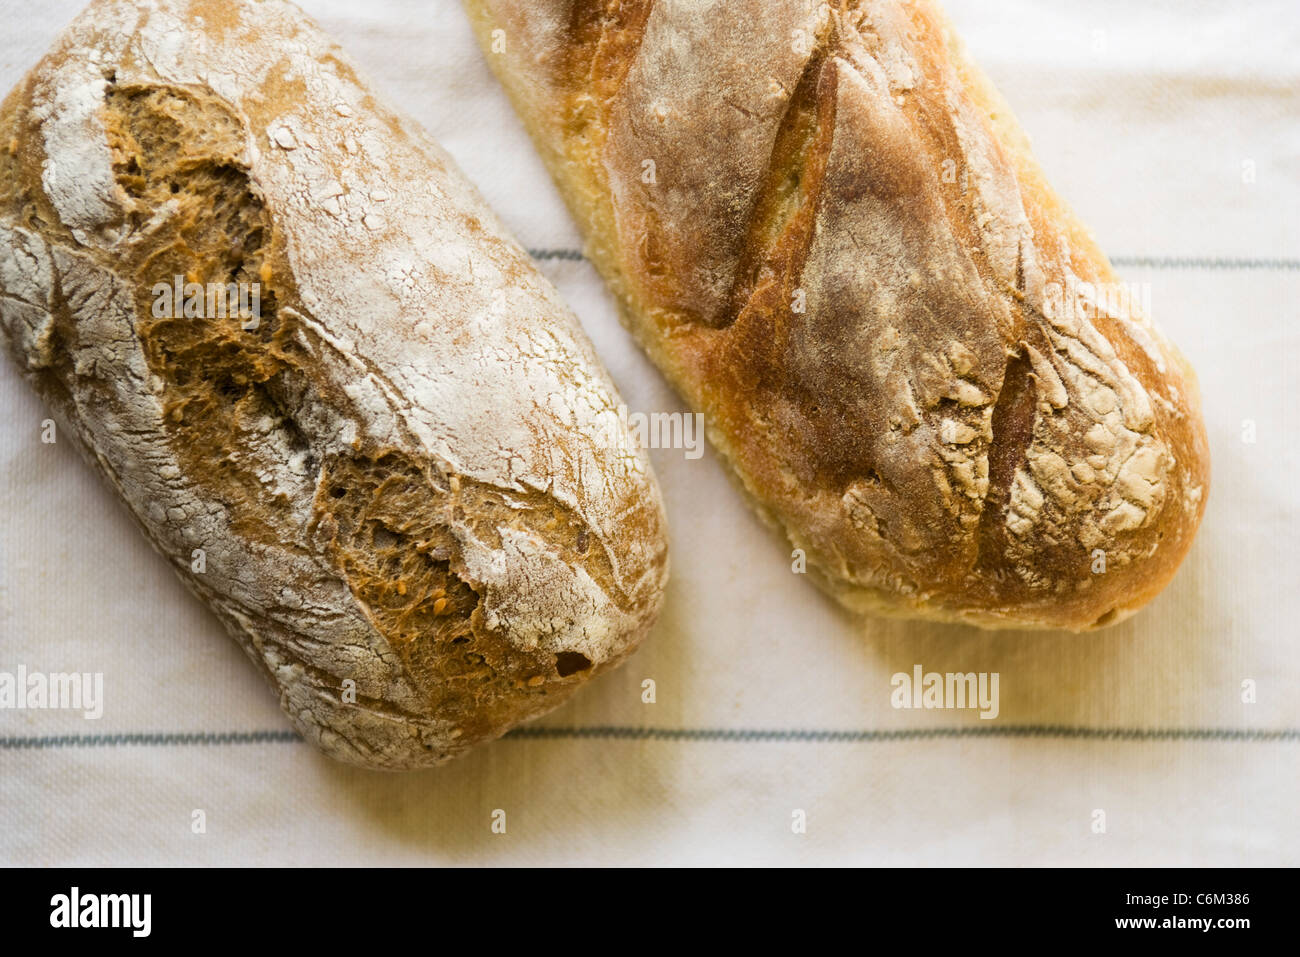 Loaves of fresh bread - Stock Image